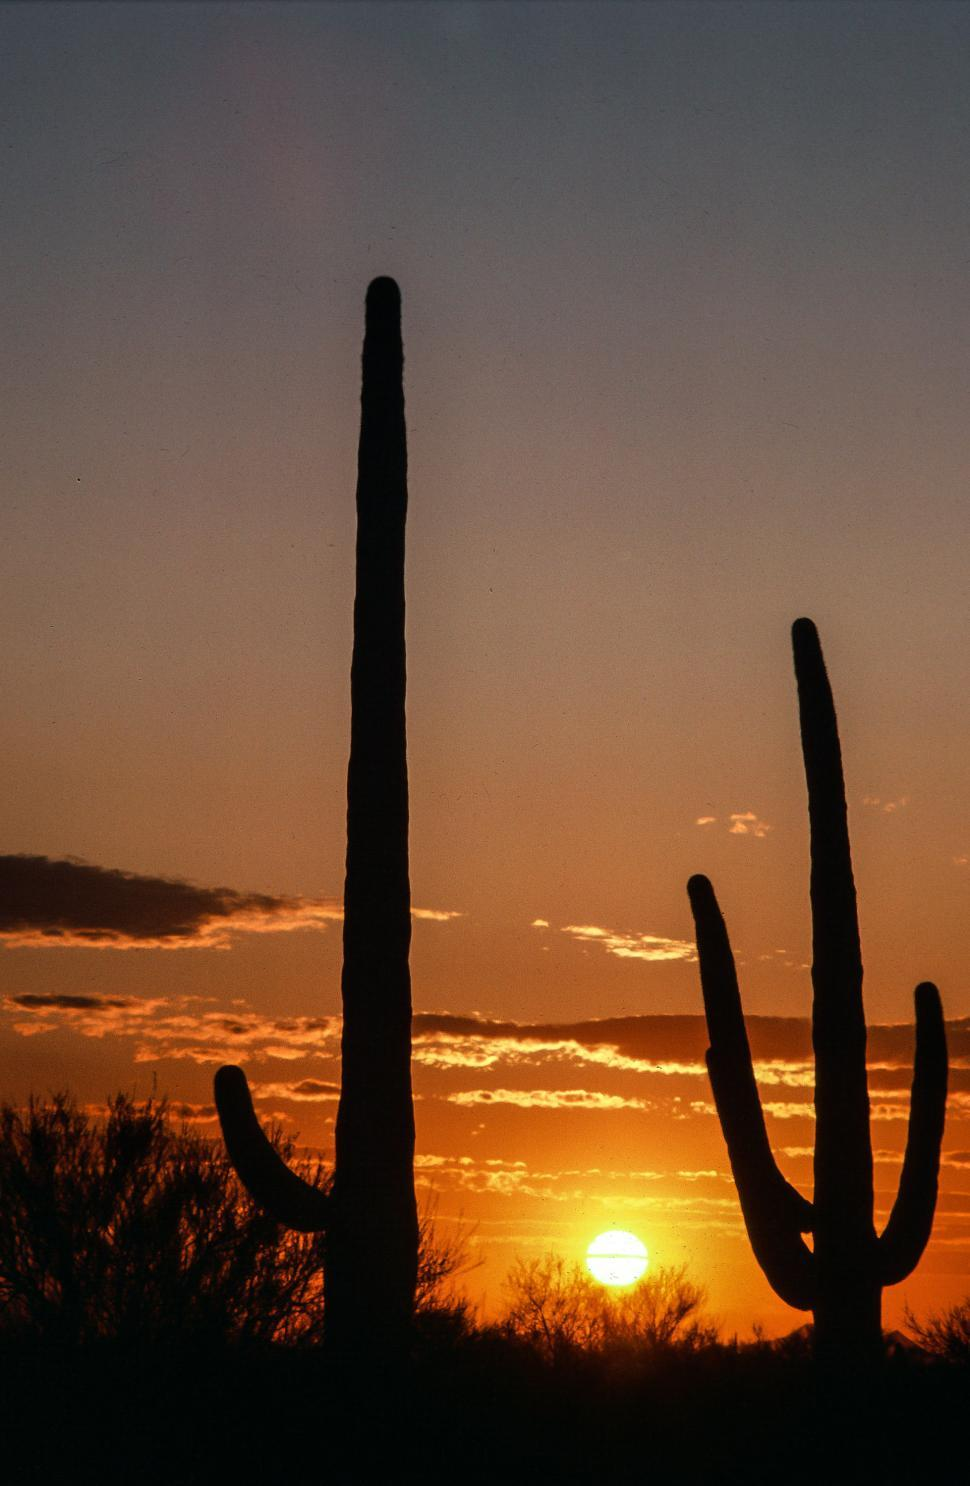 Free image of Sunset as two Saguaro Cactus seen  in the foreground